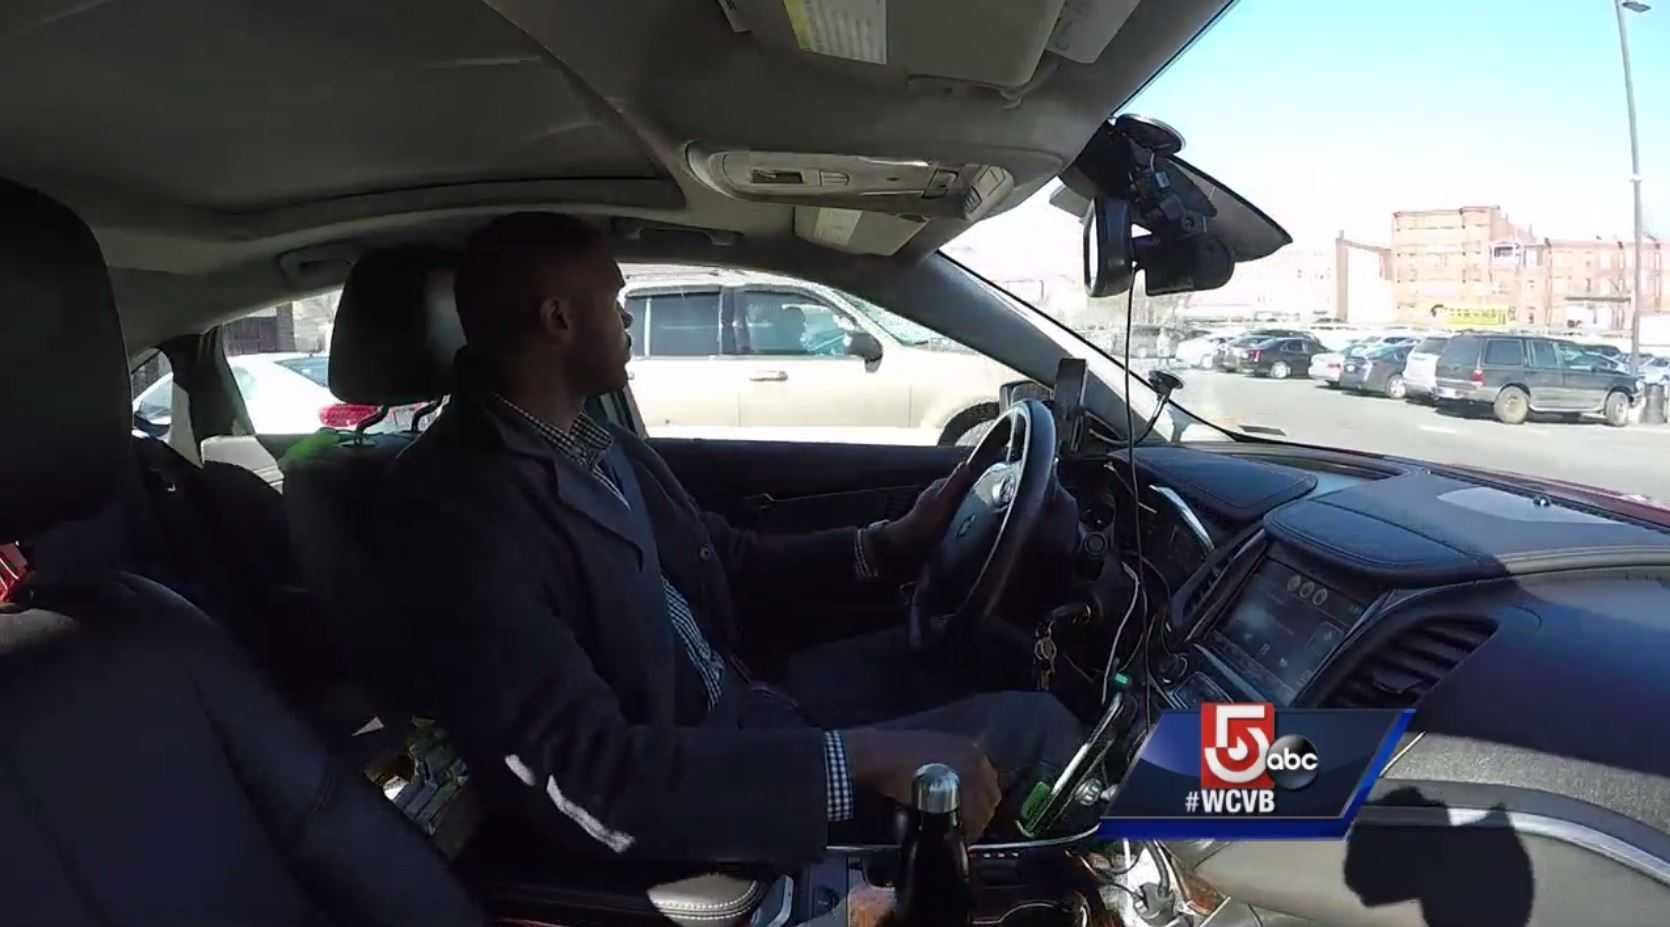 Senate Passes Bill To Expedite Ride Sharing Upstate